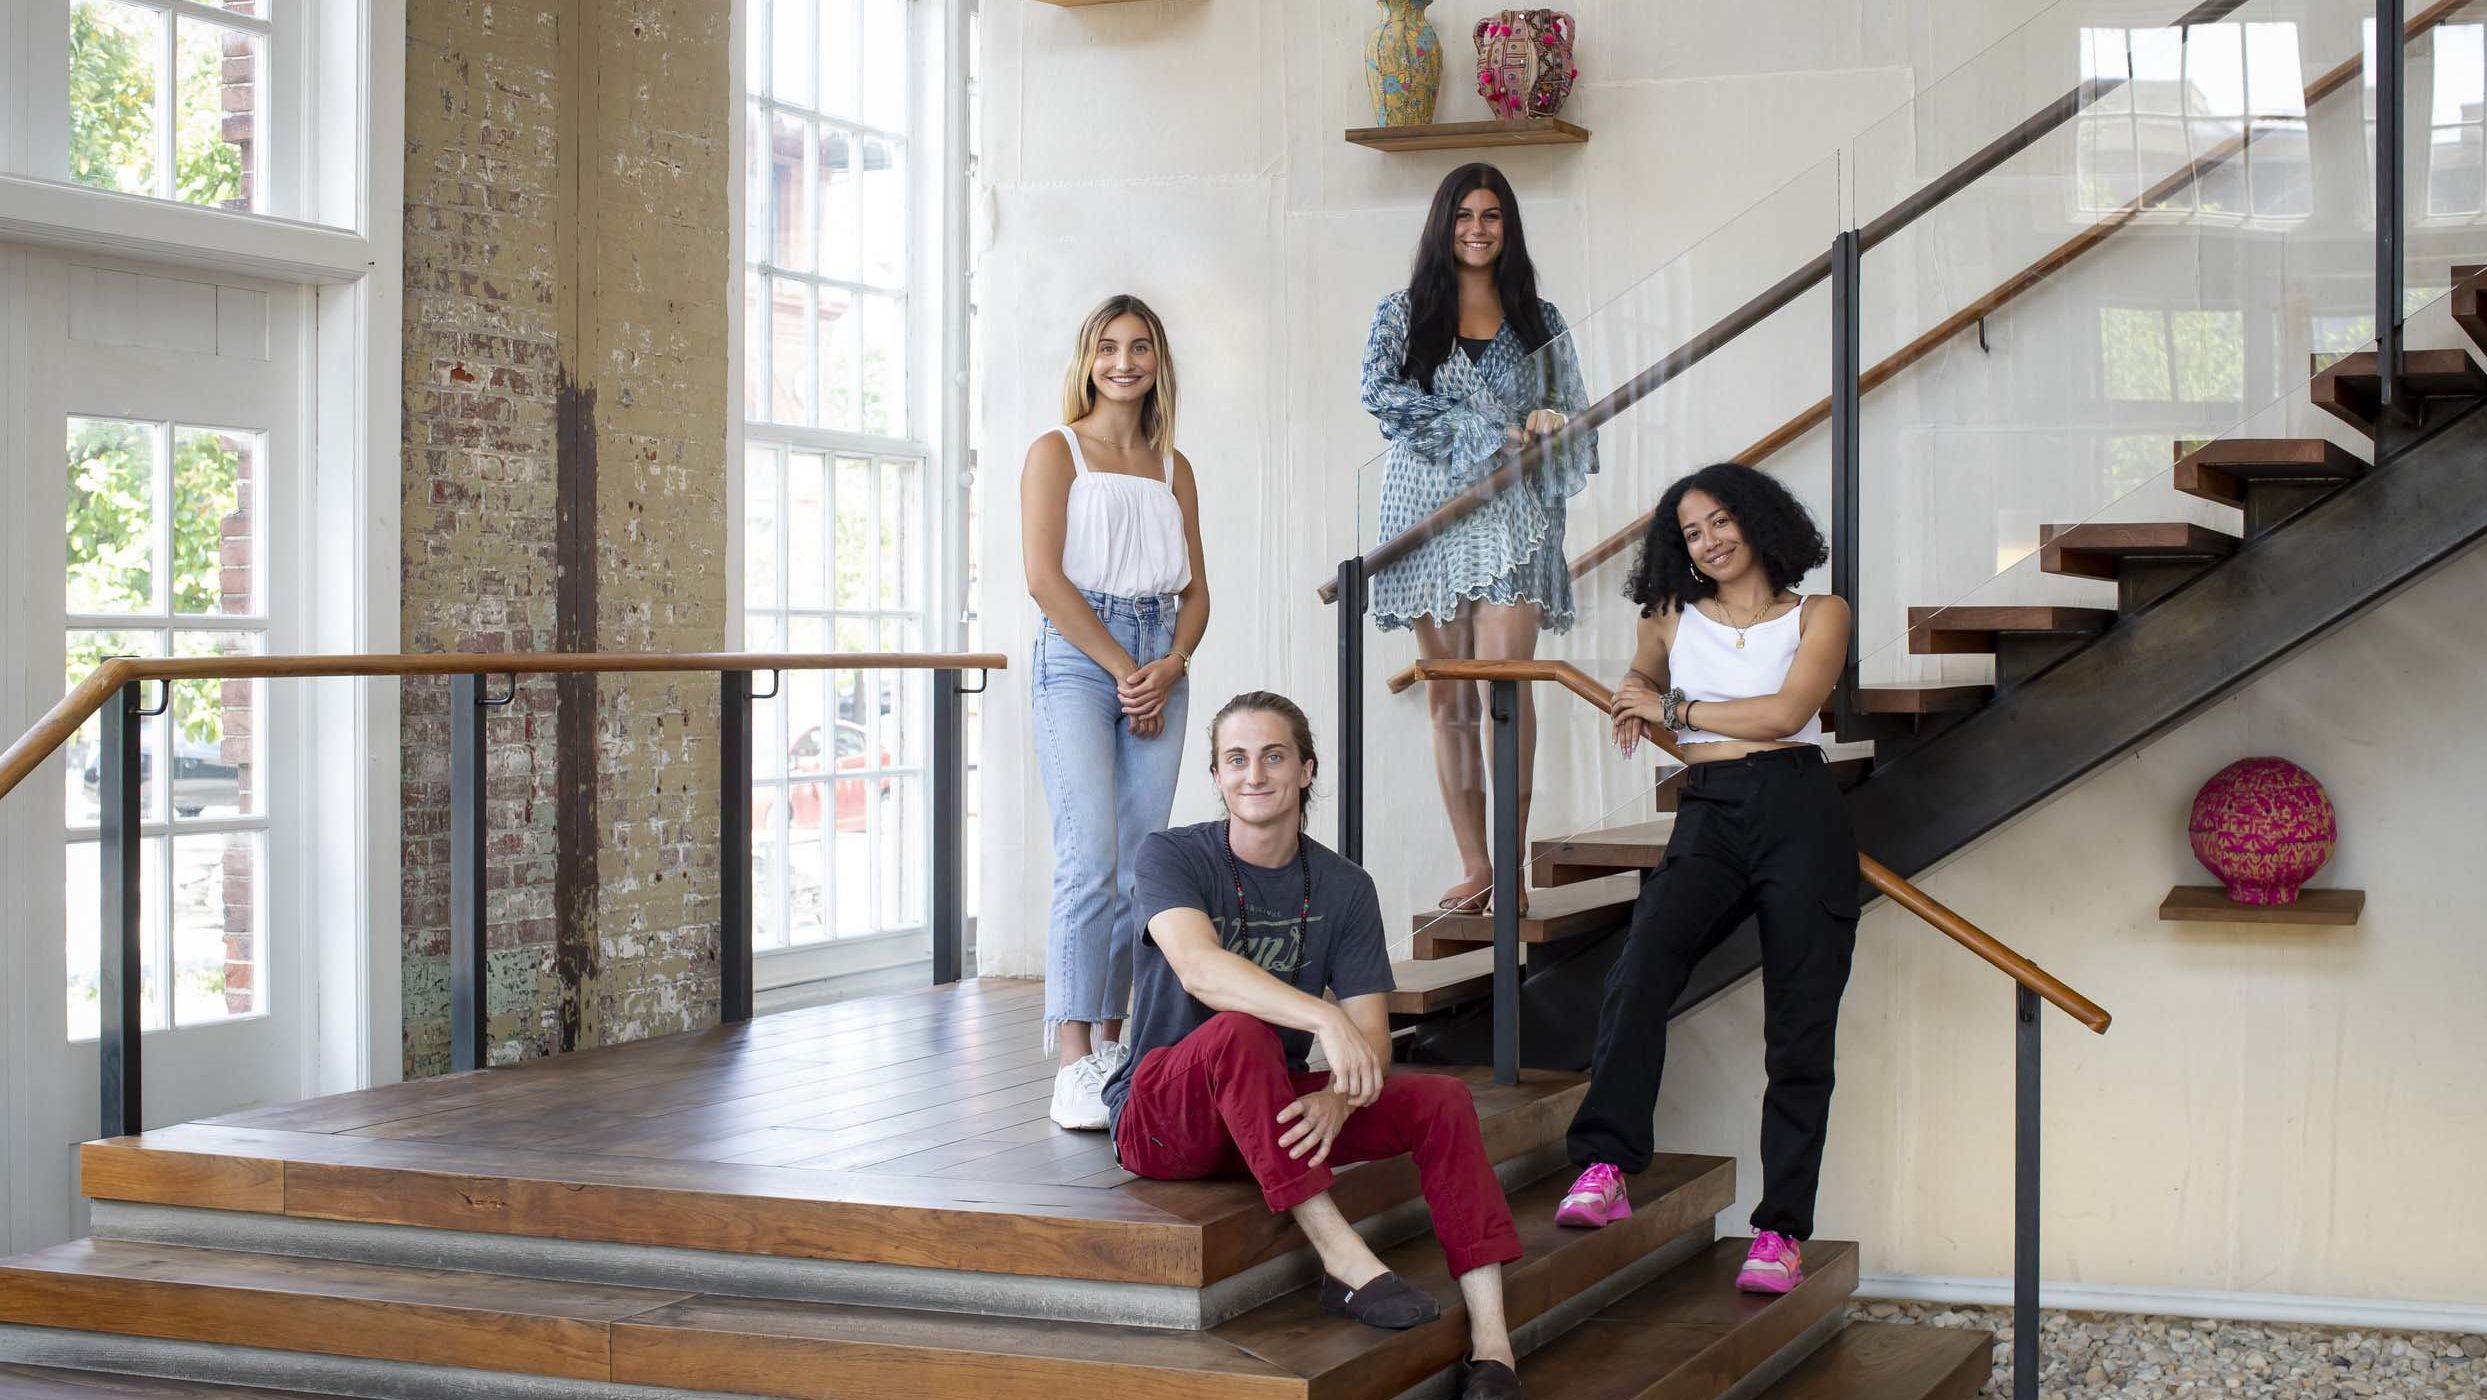 Temple University students complete summer internships at URBN, located at the Philadelphia Navy Yard, working on marketing, buying, public relations and design.